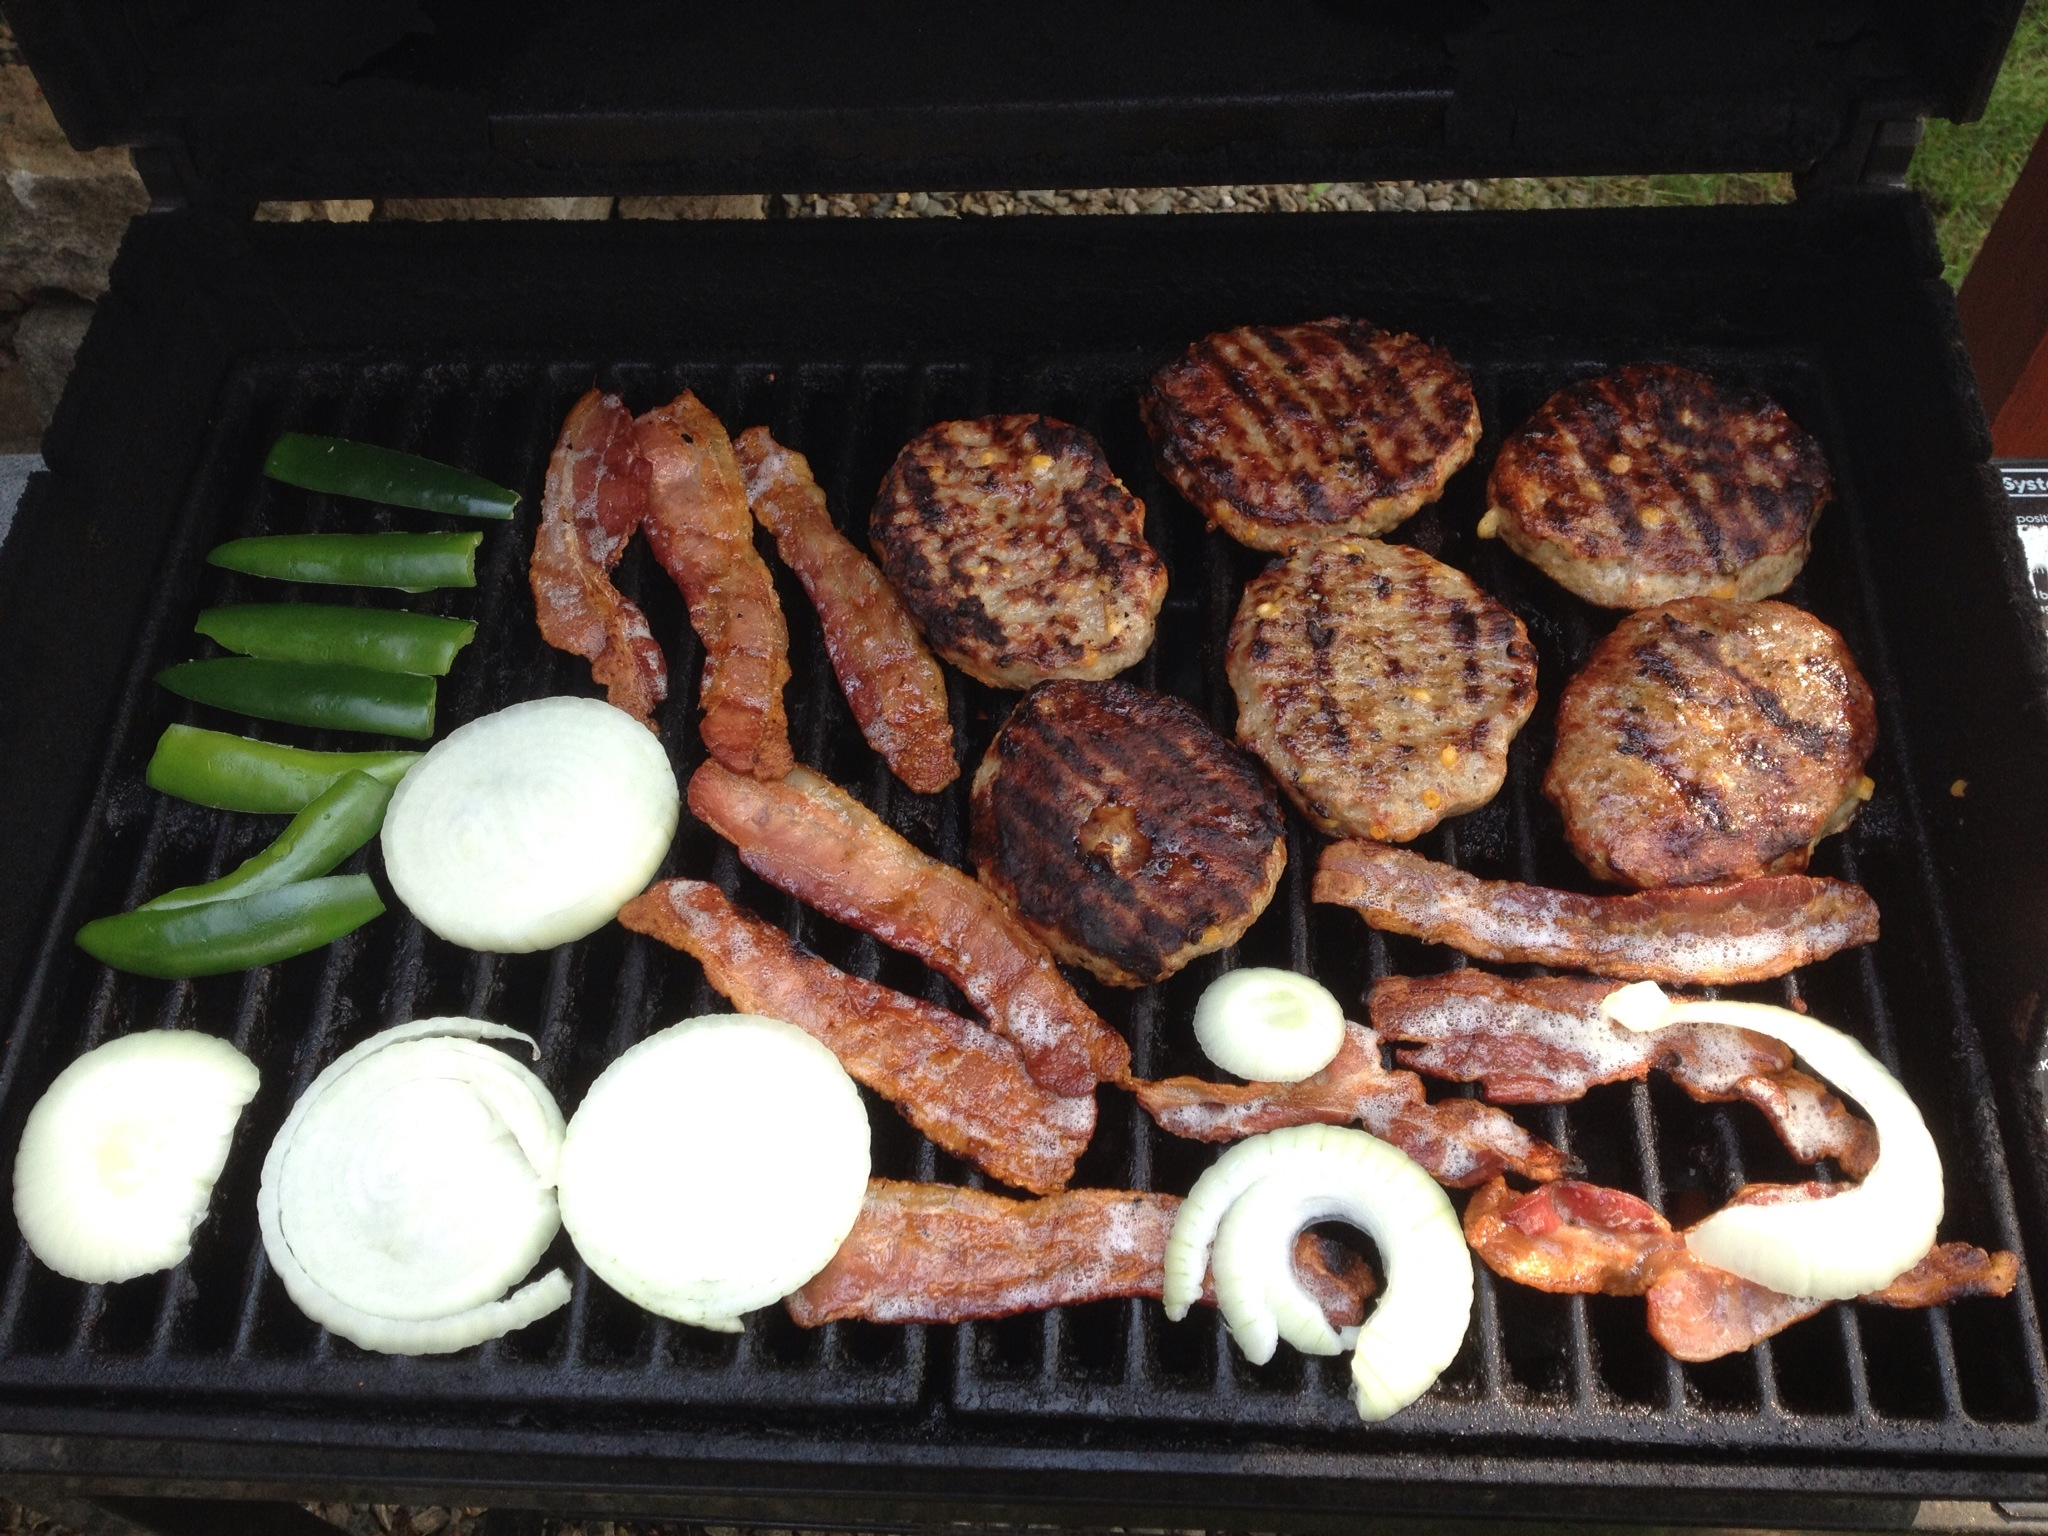 Introducing Johnsonville's Cheddar Bratwurst Patties at a Memorial Day BBQ